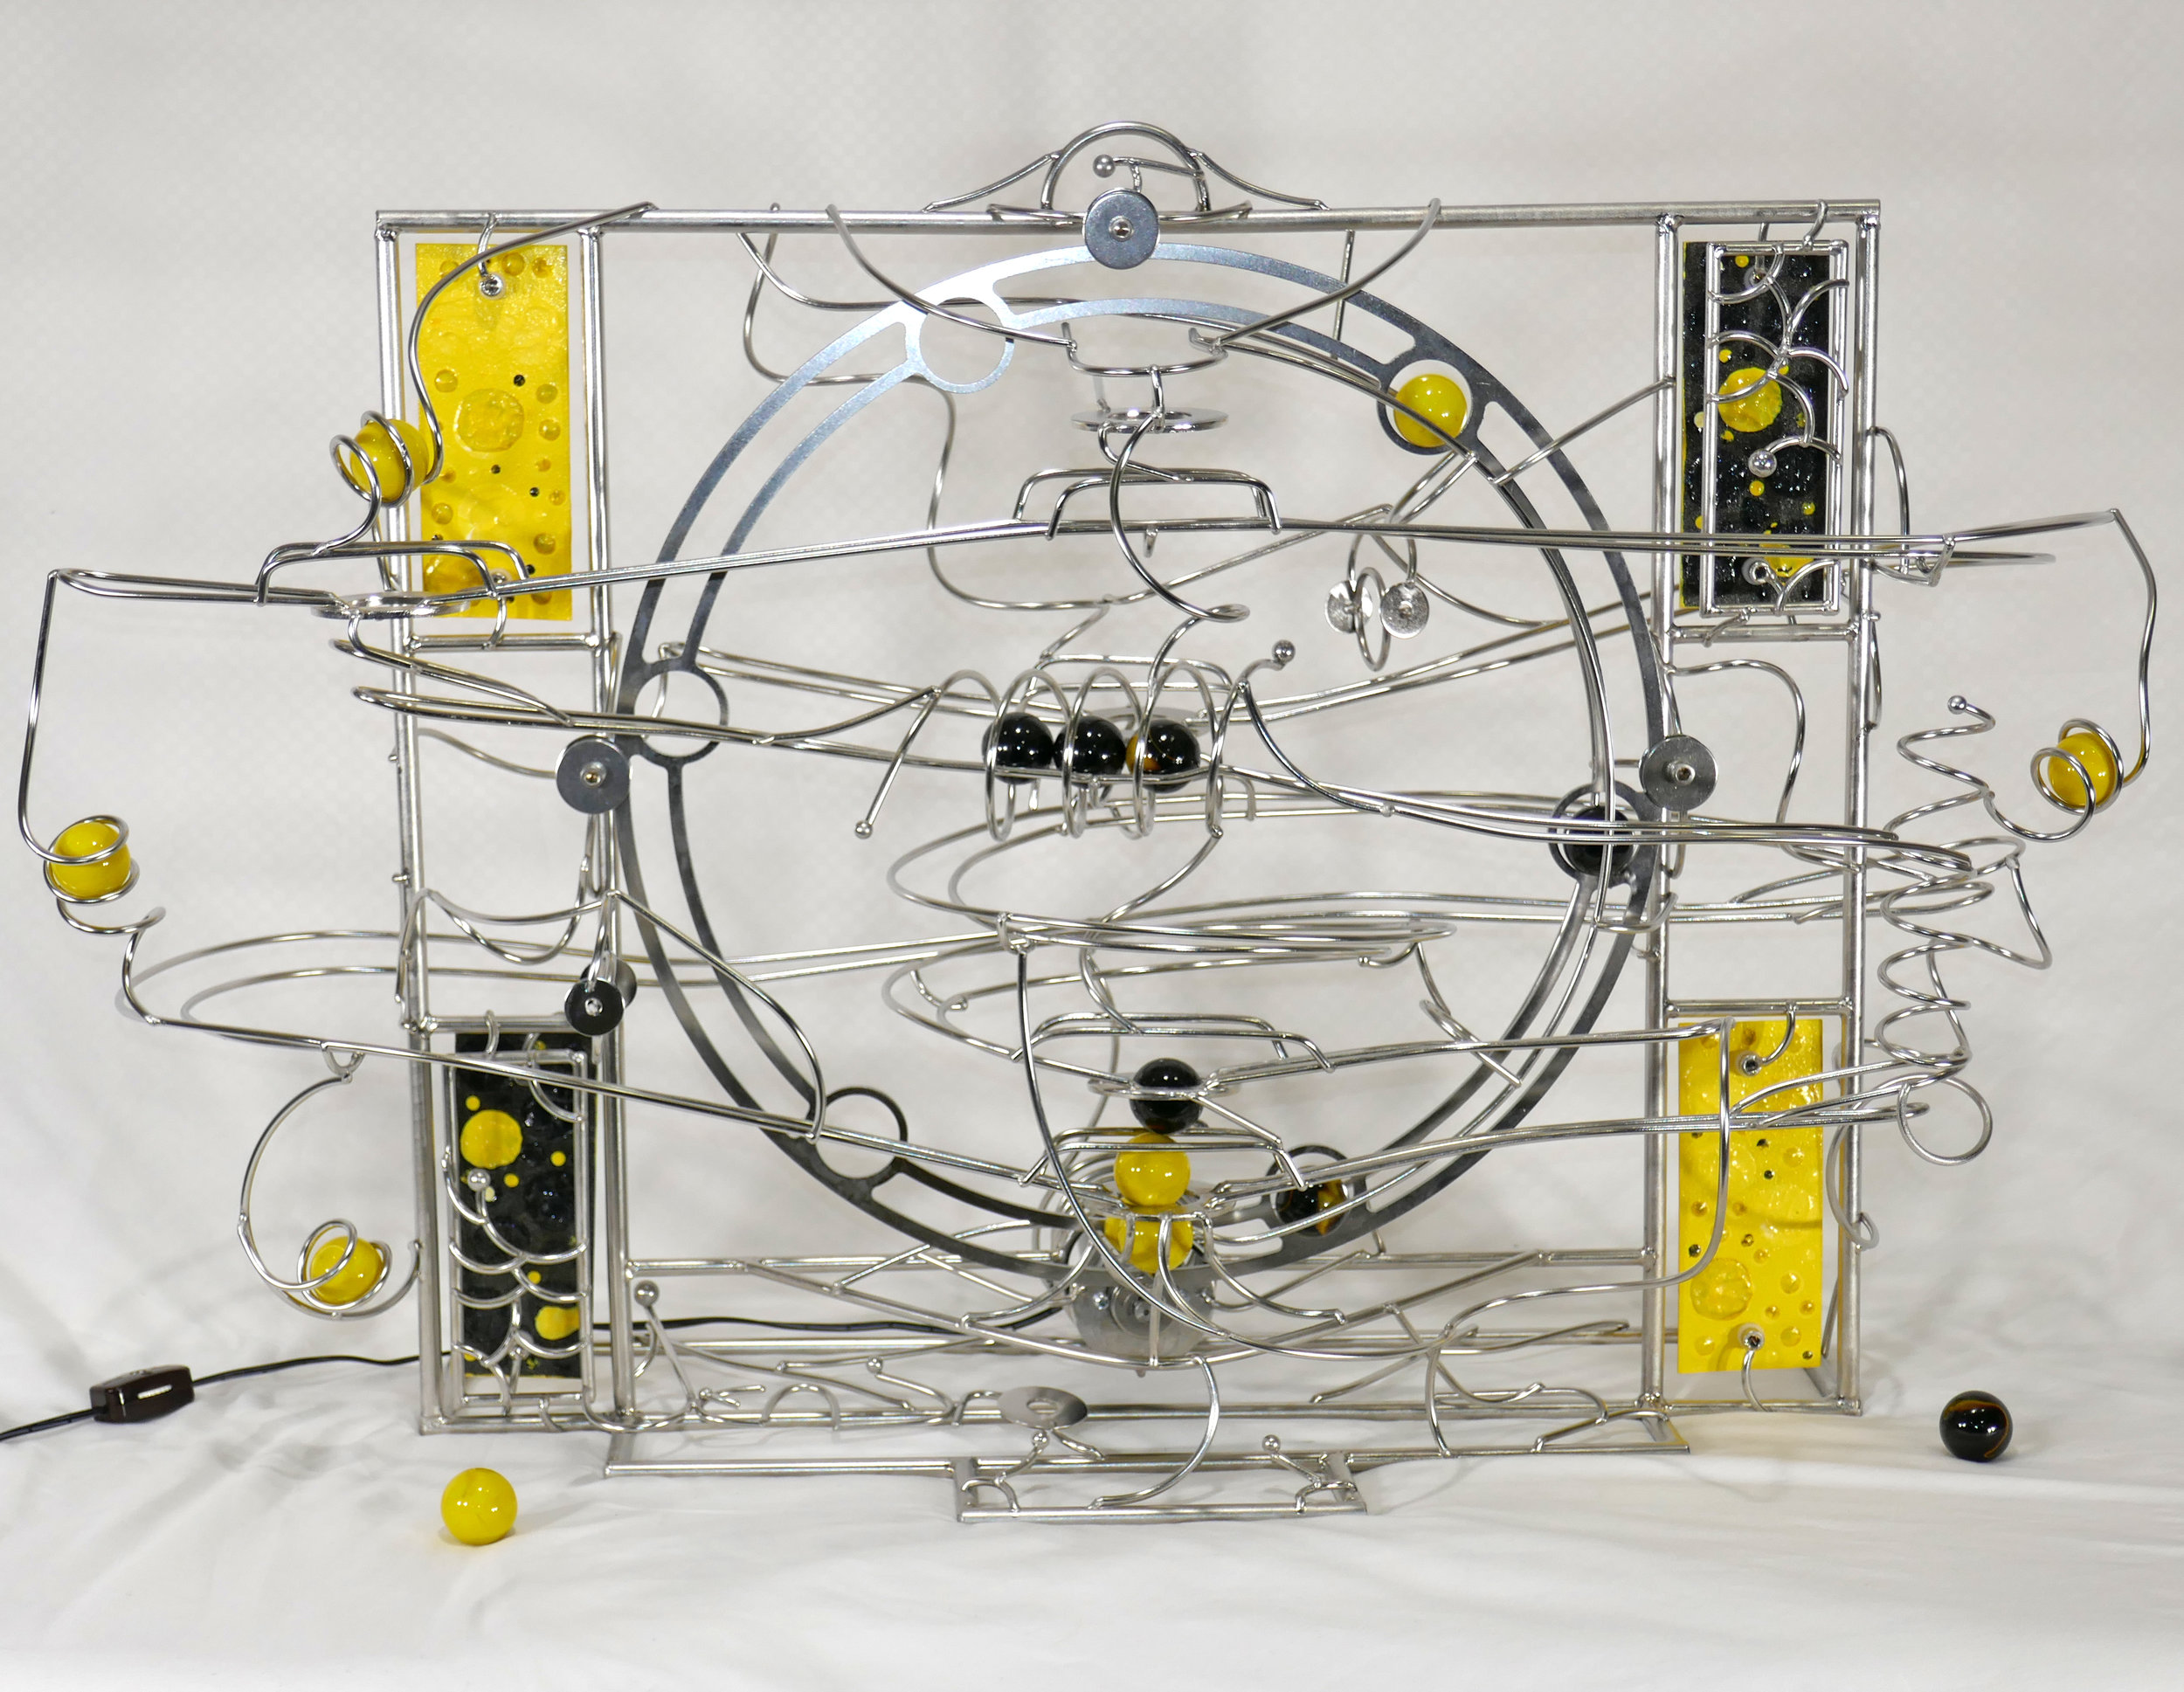 Rolling ball marble machine - Yellow and black marbles - named Orpiment - front view